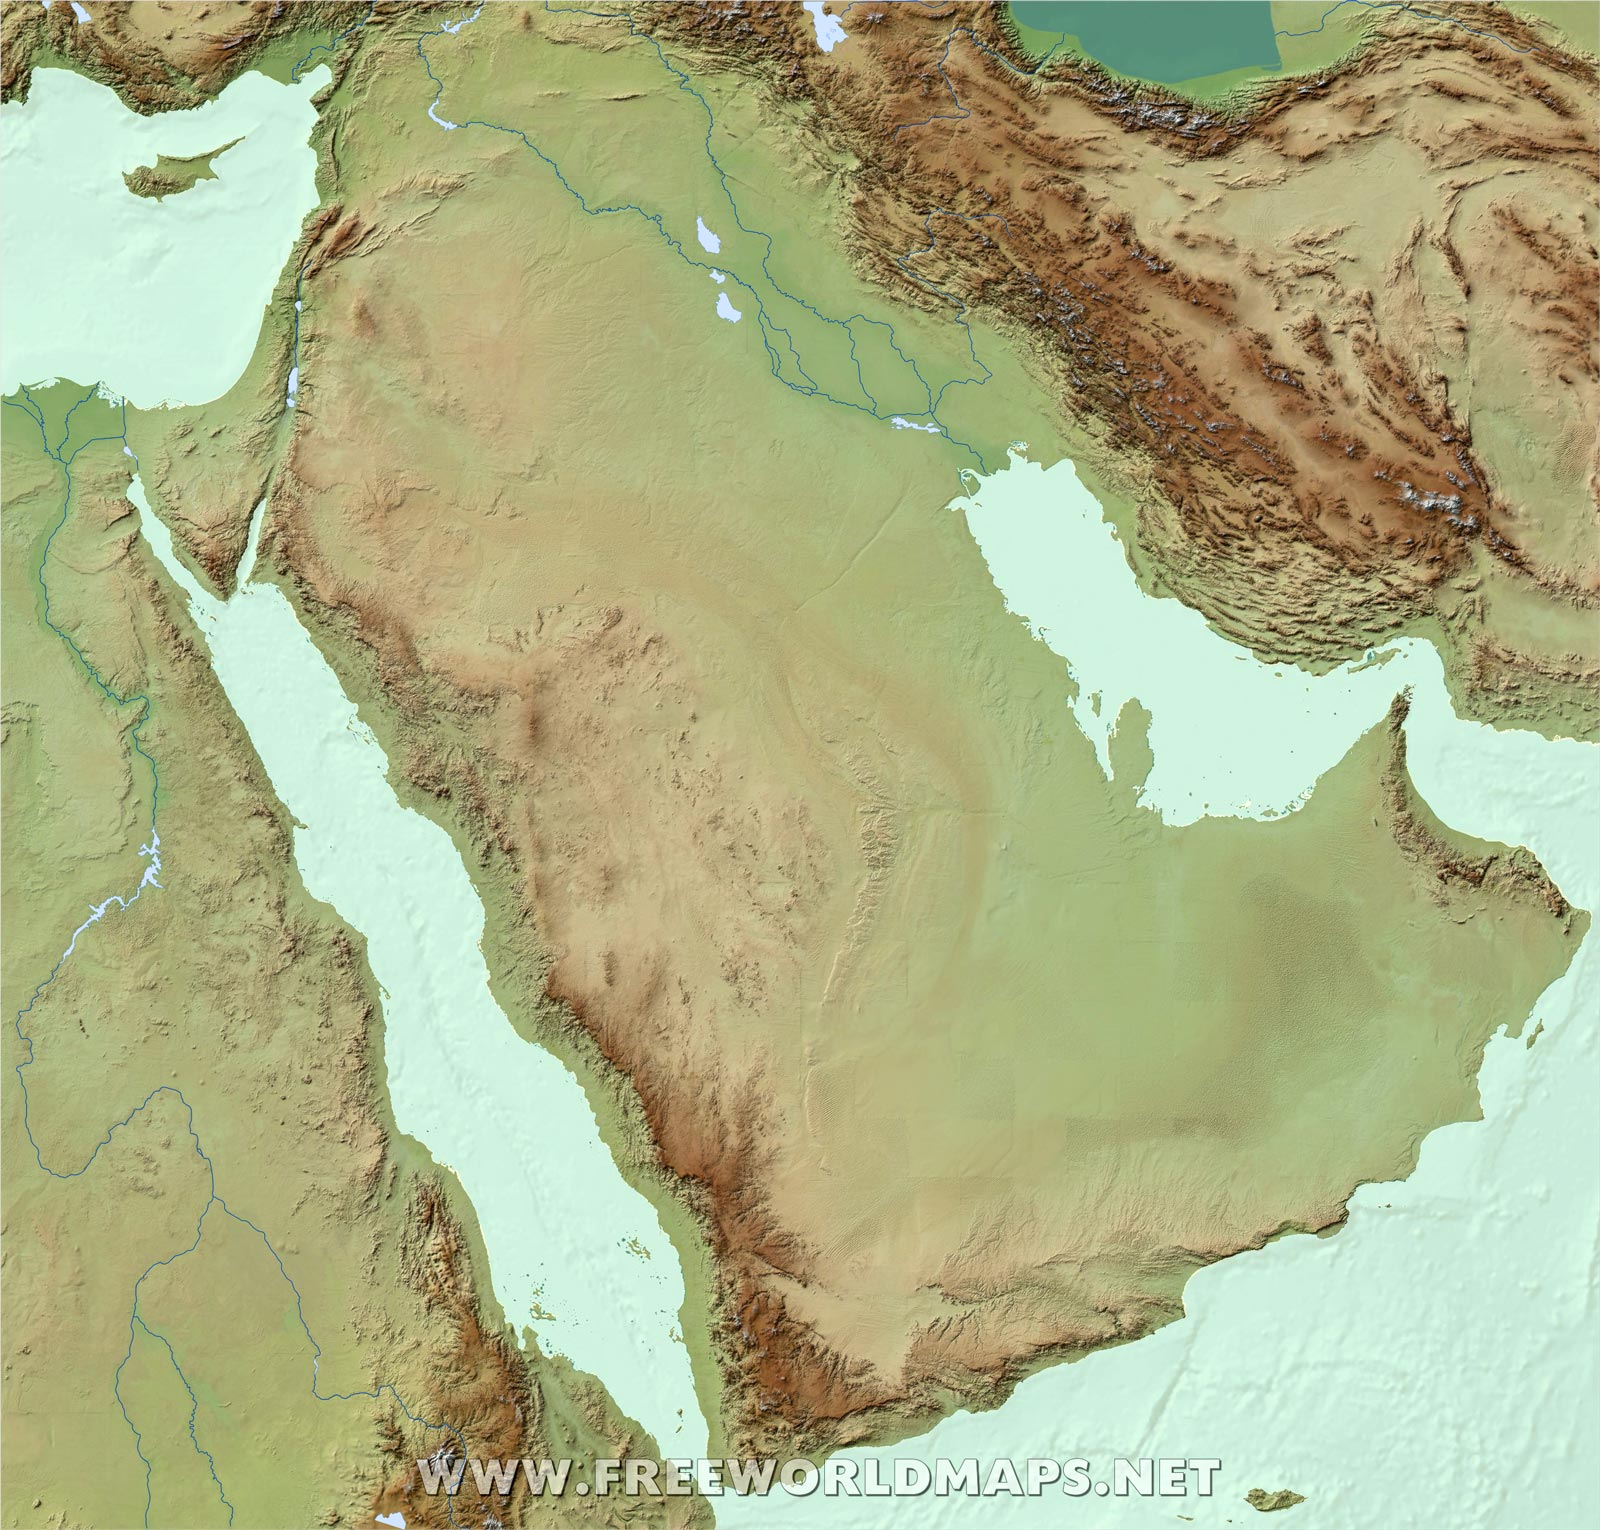 Free Middle East Maps – by Freeworldmaps.net